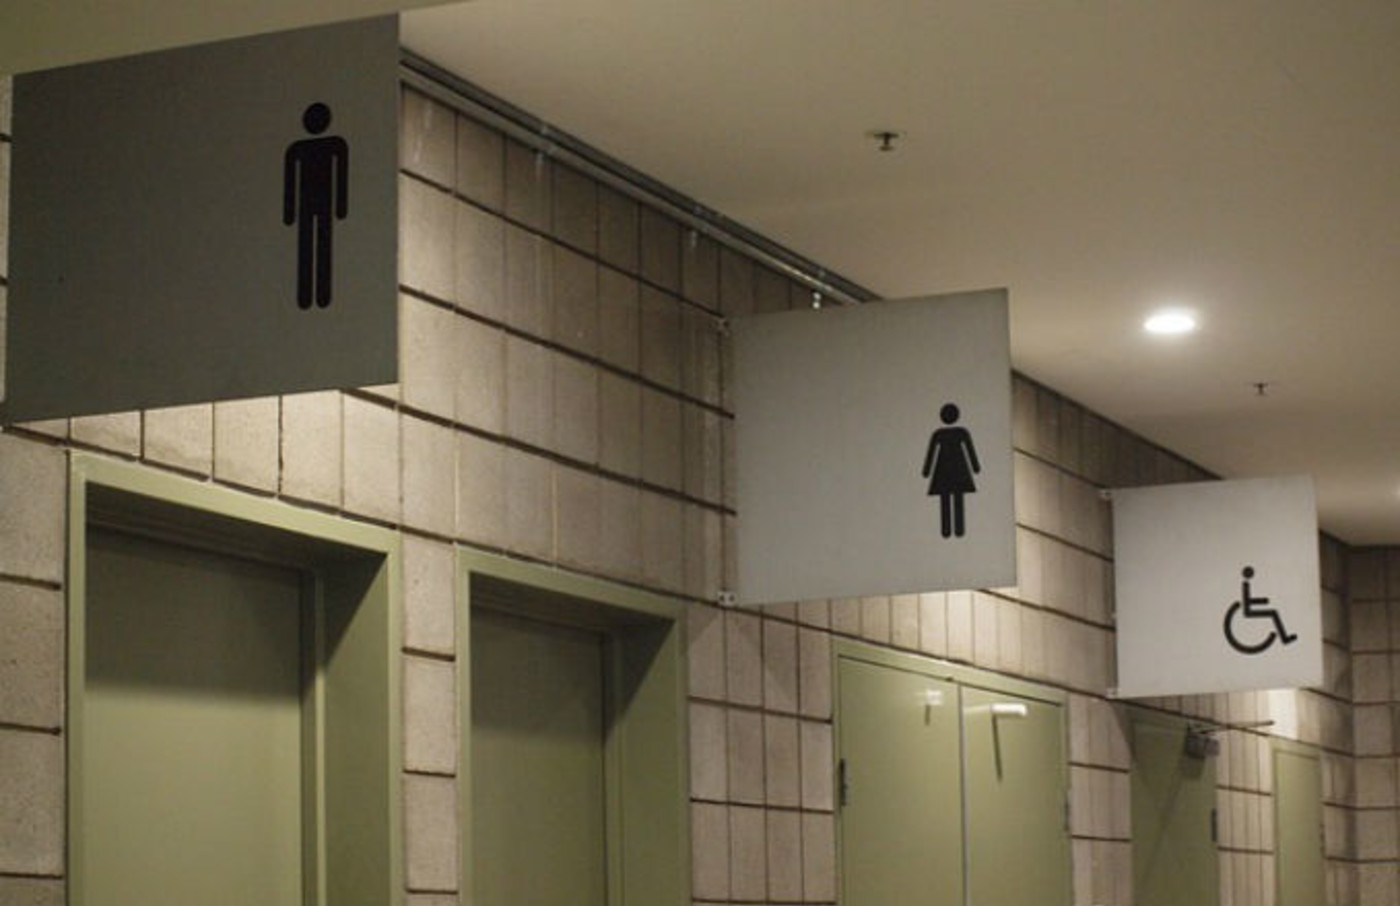 Bathroom signs.